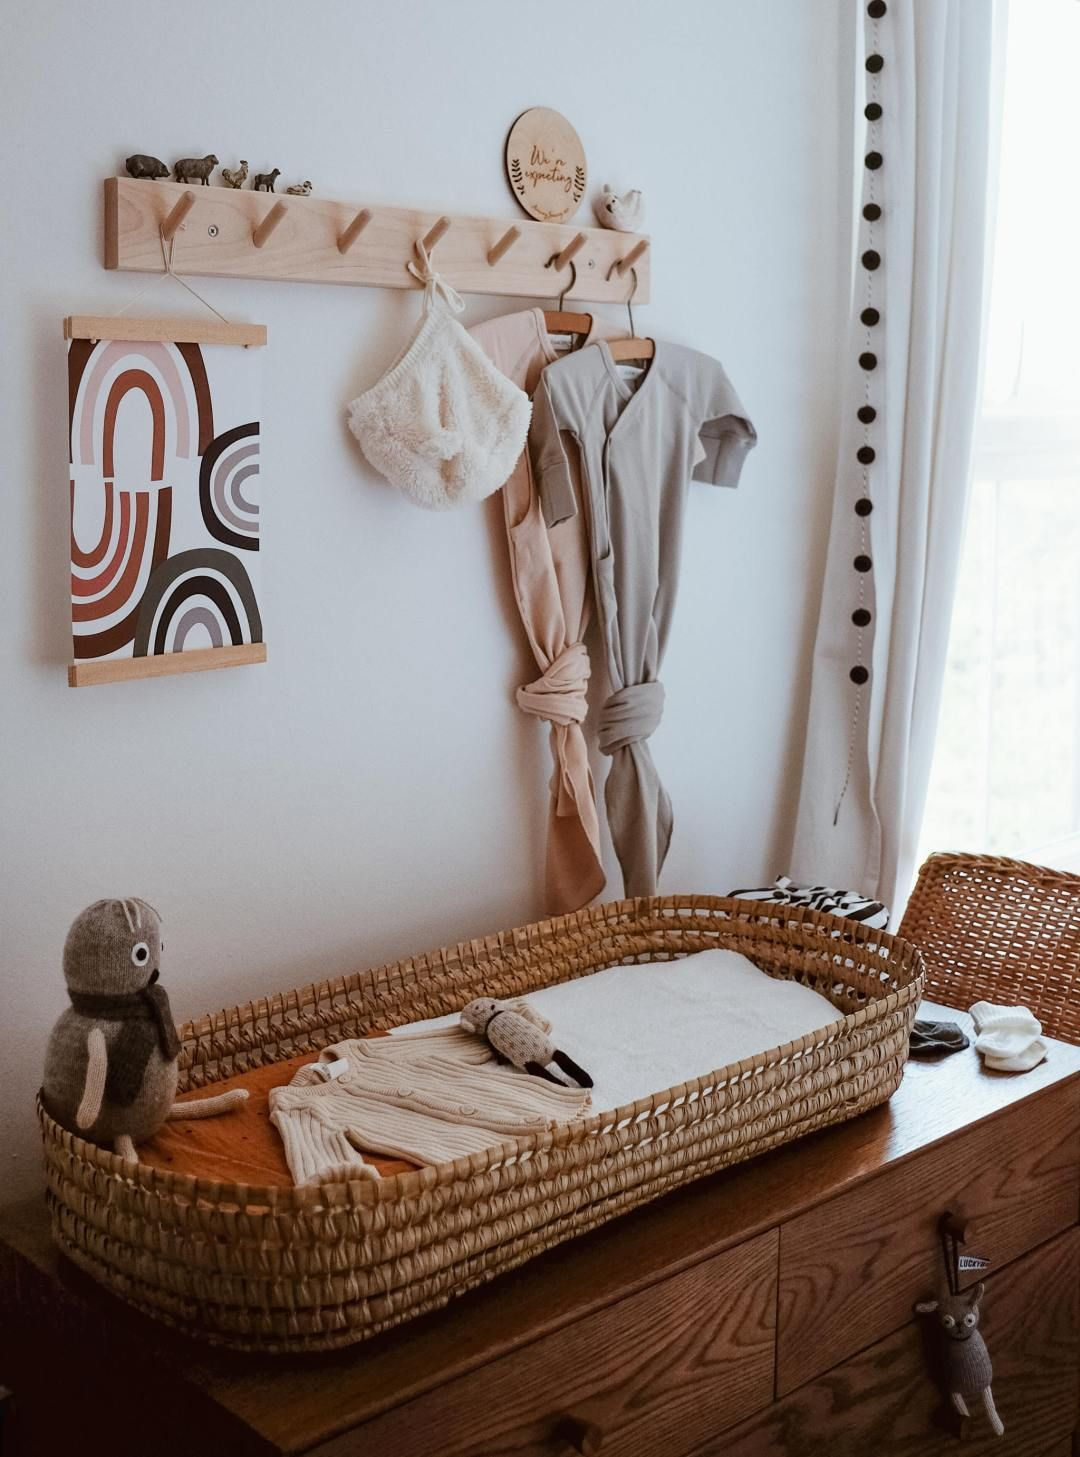 Sharing Your Room With Baby - Salt And Sand Sharing | Baby, Room, Nursery